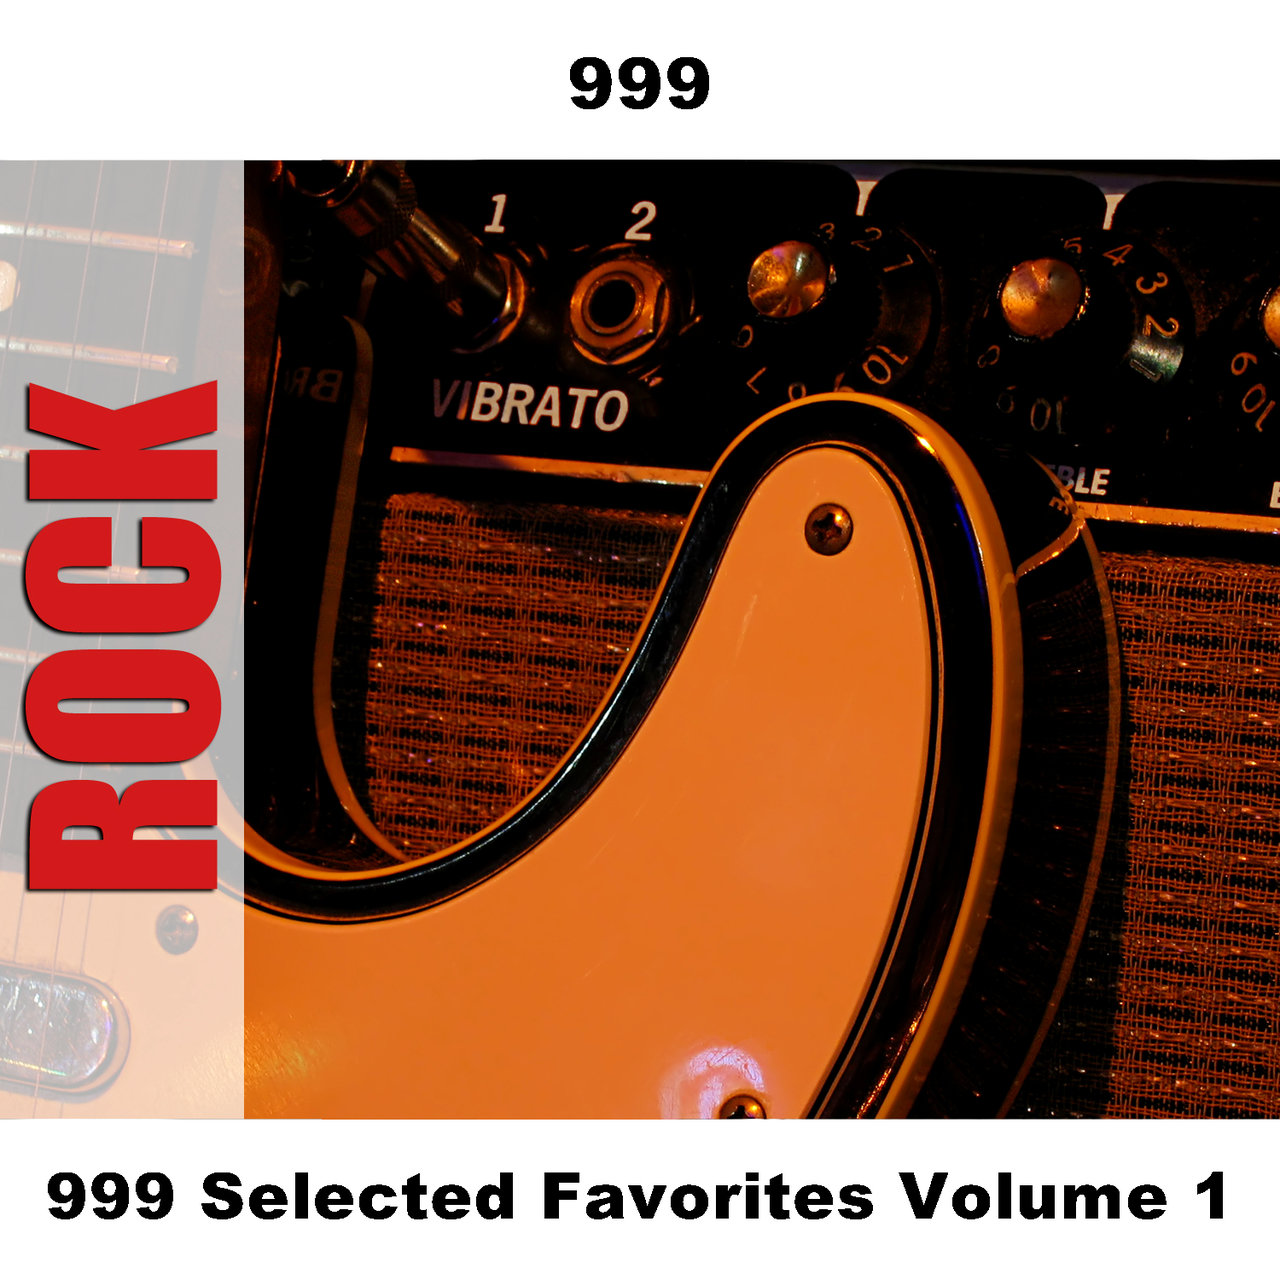 999 Selected Favorites Volume 1